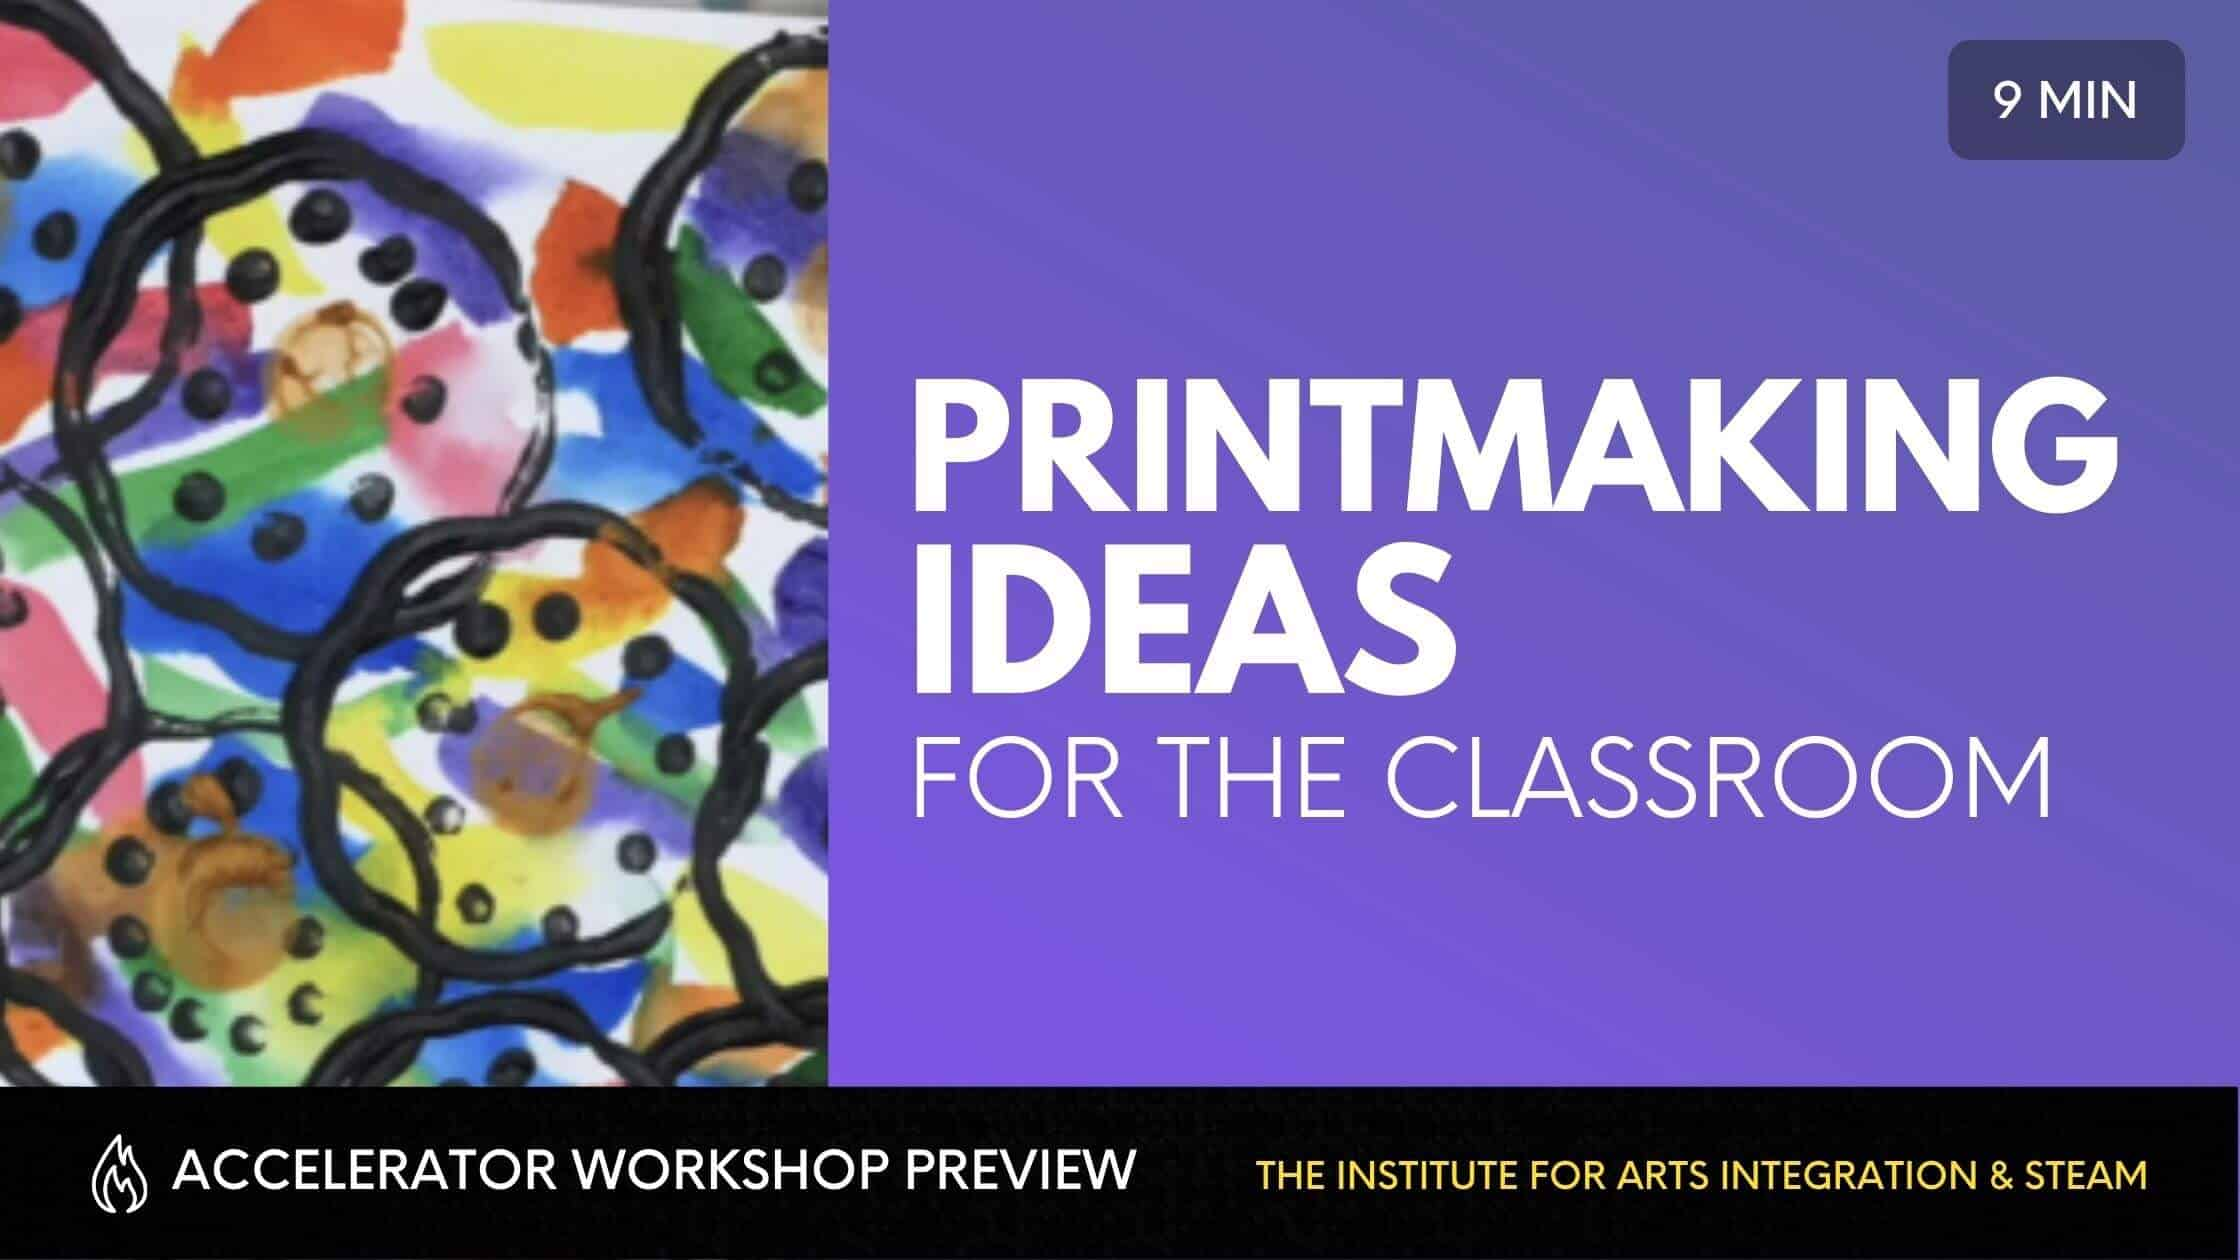 PRINTMAKING IDEAS FOR THE CLASSROOM